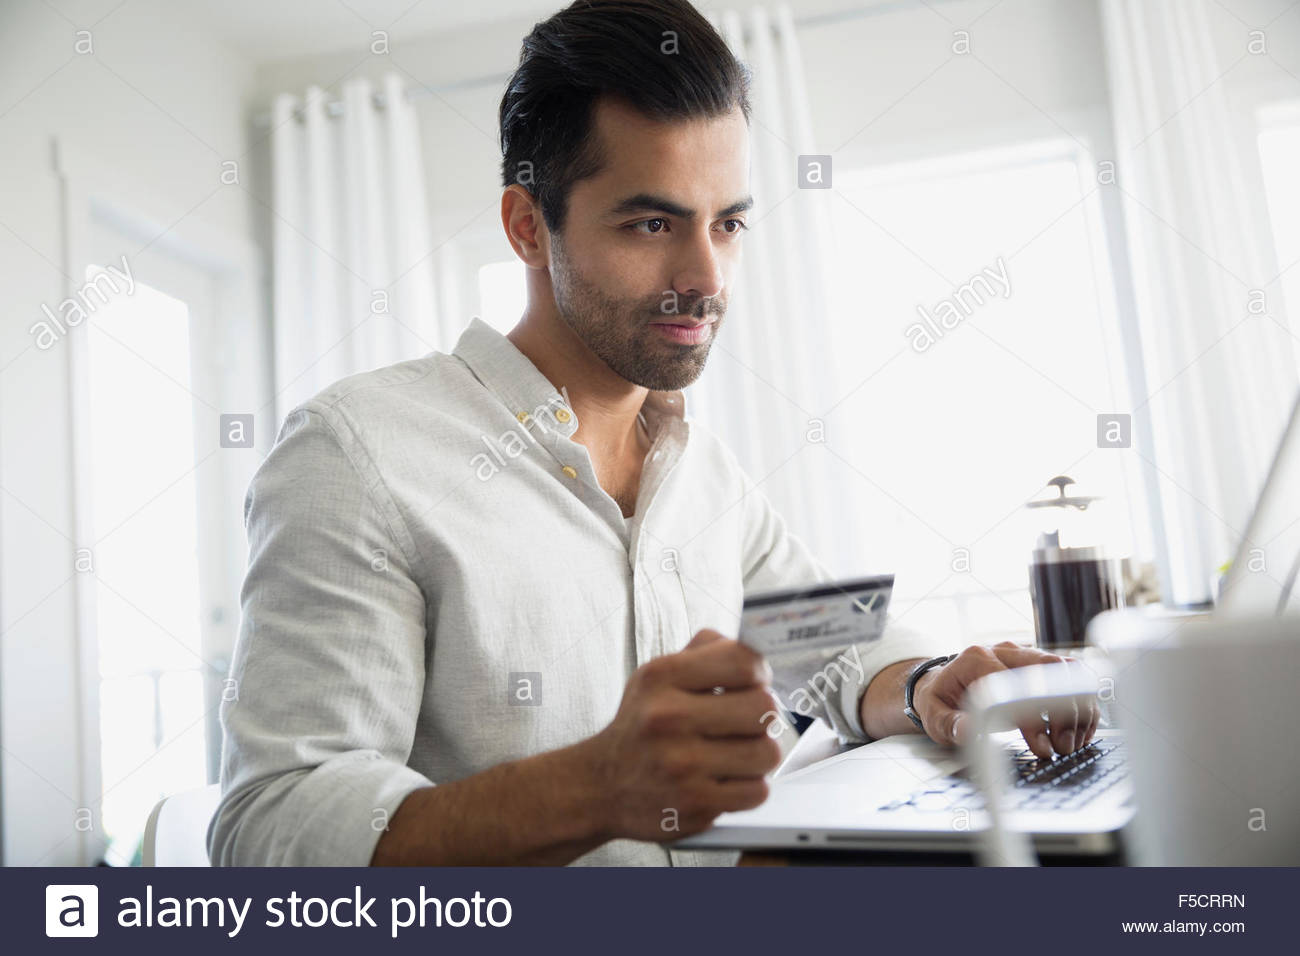 Man with credit card using laptop - Stock Image